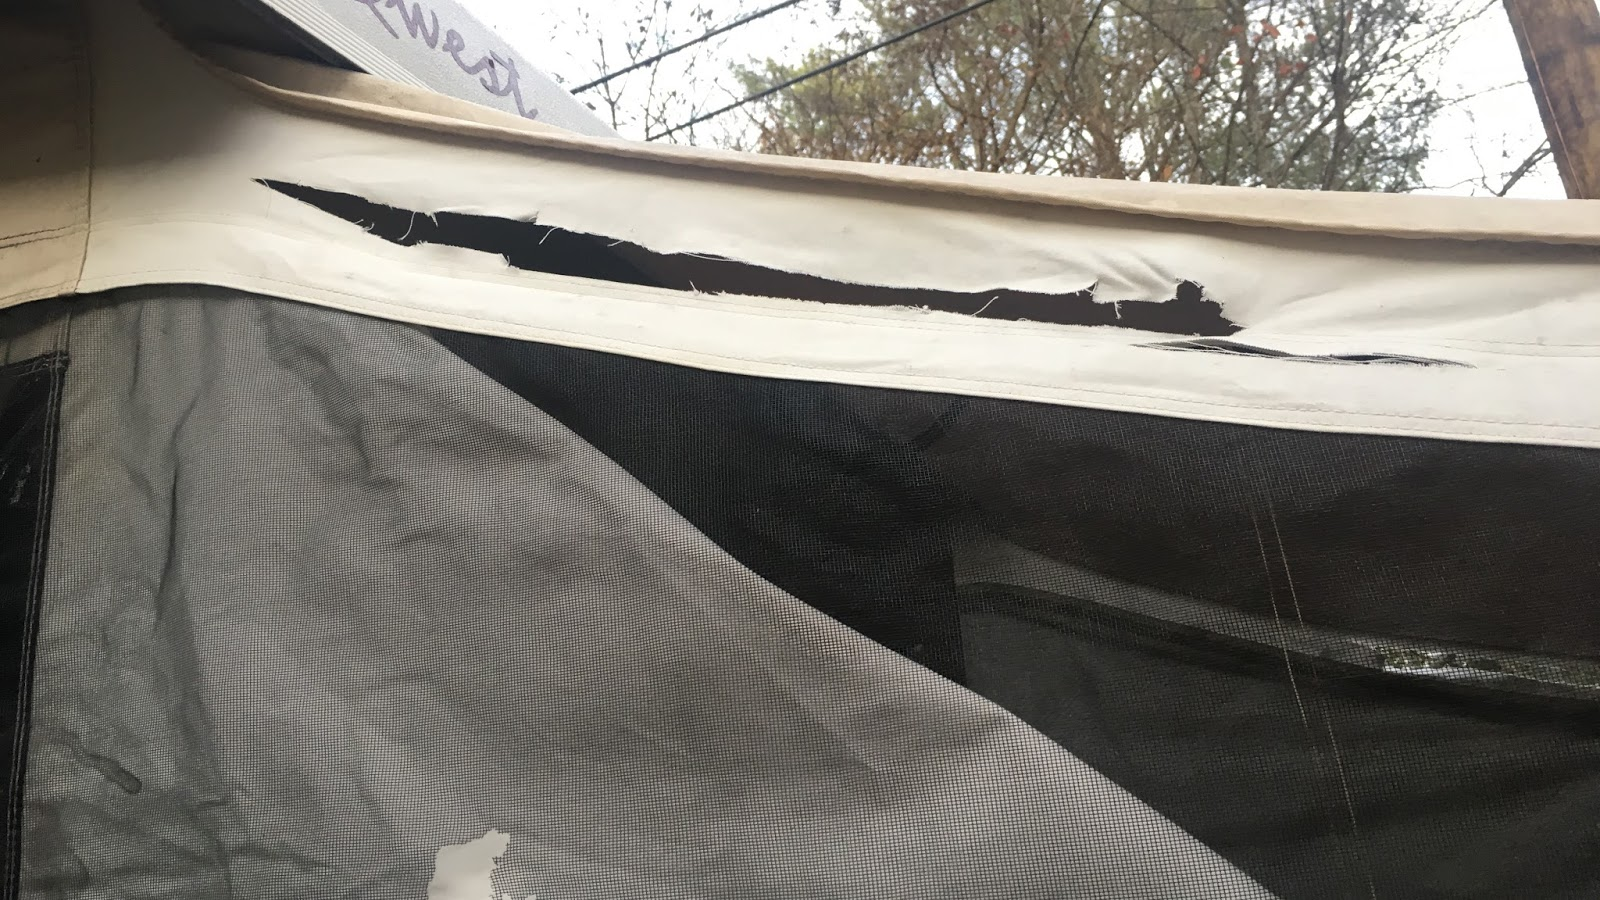 So I opted to use the canvas repair kit. I glued a piece of cut canvas repair fabric on both the interior and exterior of the c&er. & The Southern Glamper: How to Repair Torn Canvas on a Pop Up Camper